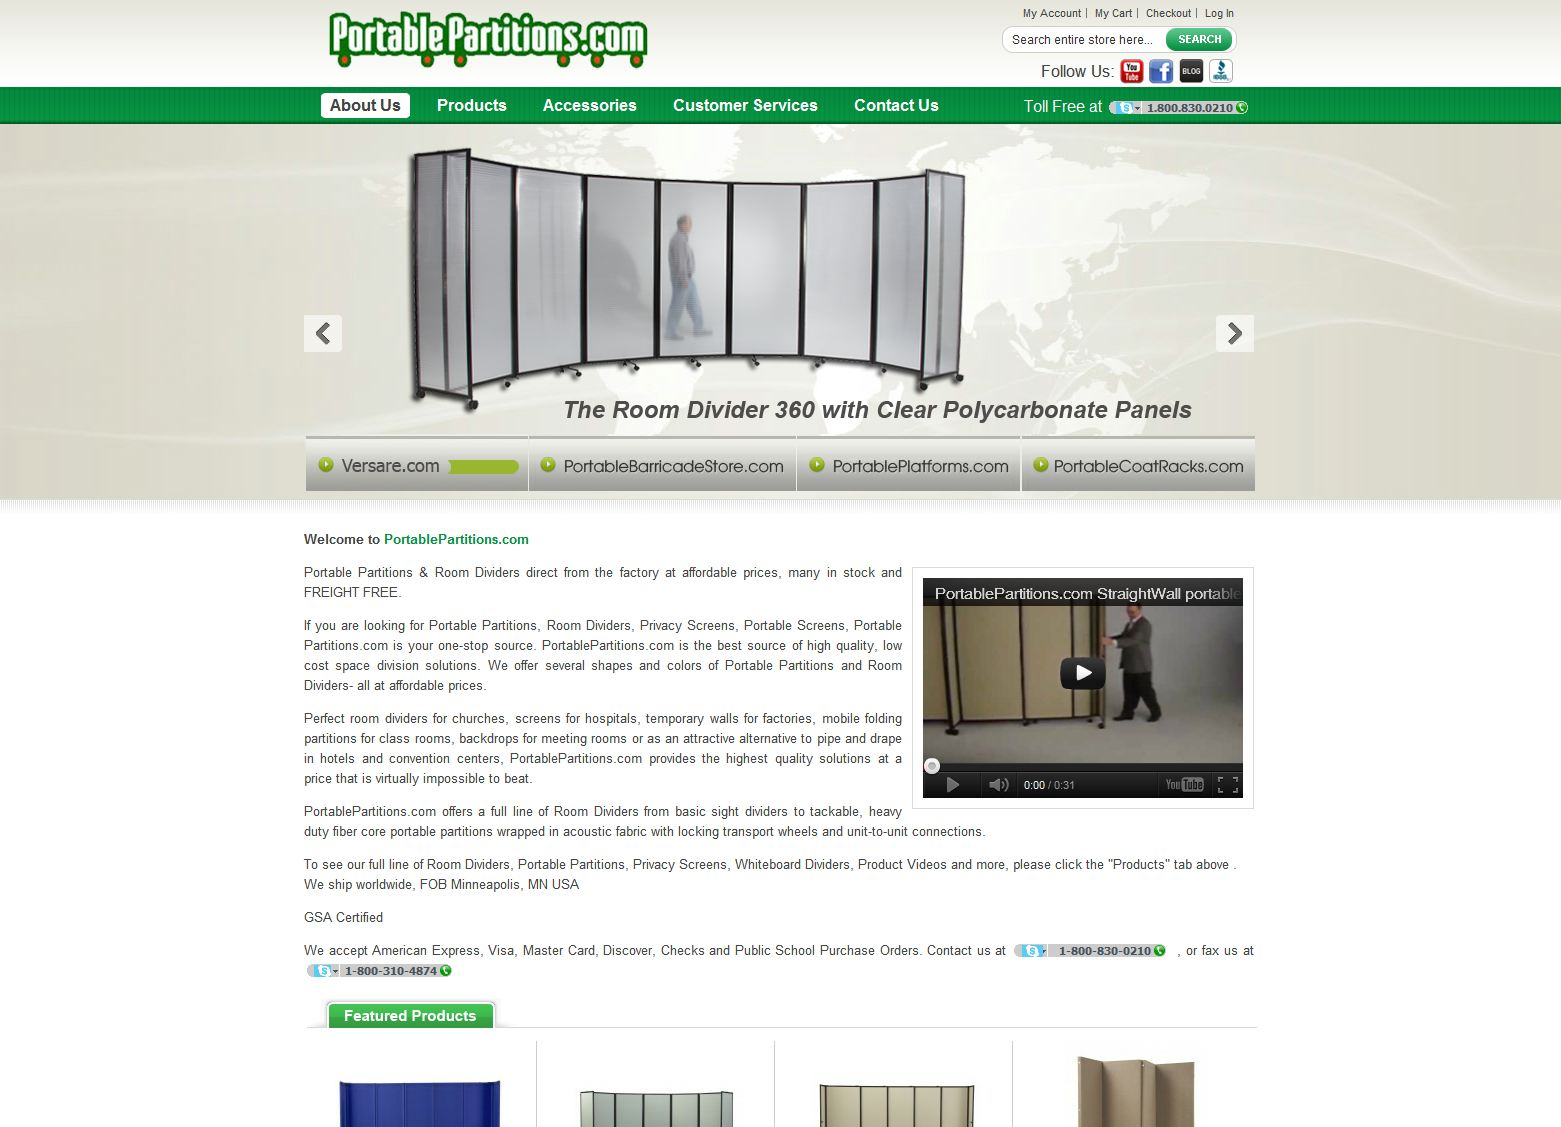 Charming PortablePartitions Rated 5/5 Stars By 1 Consumers   Portablepartitions.com  Consumer Reviews At ResellerRatings